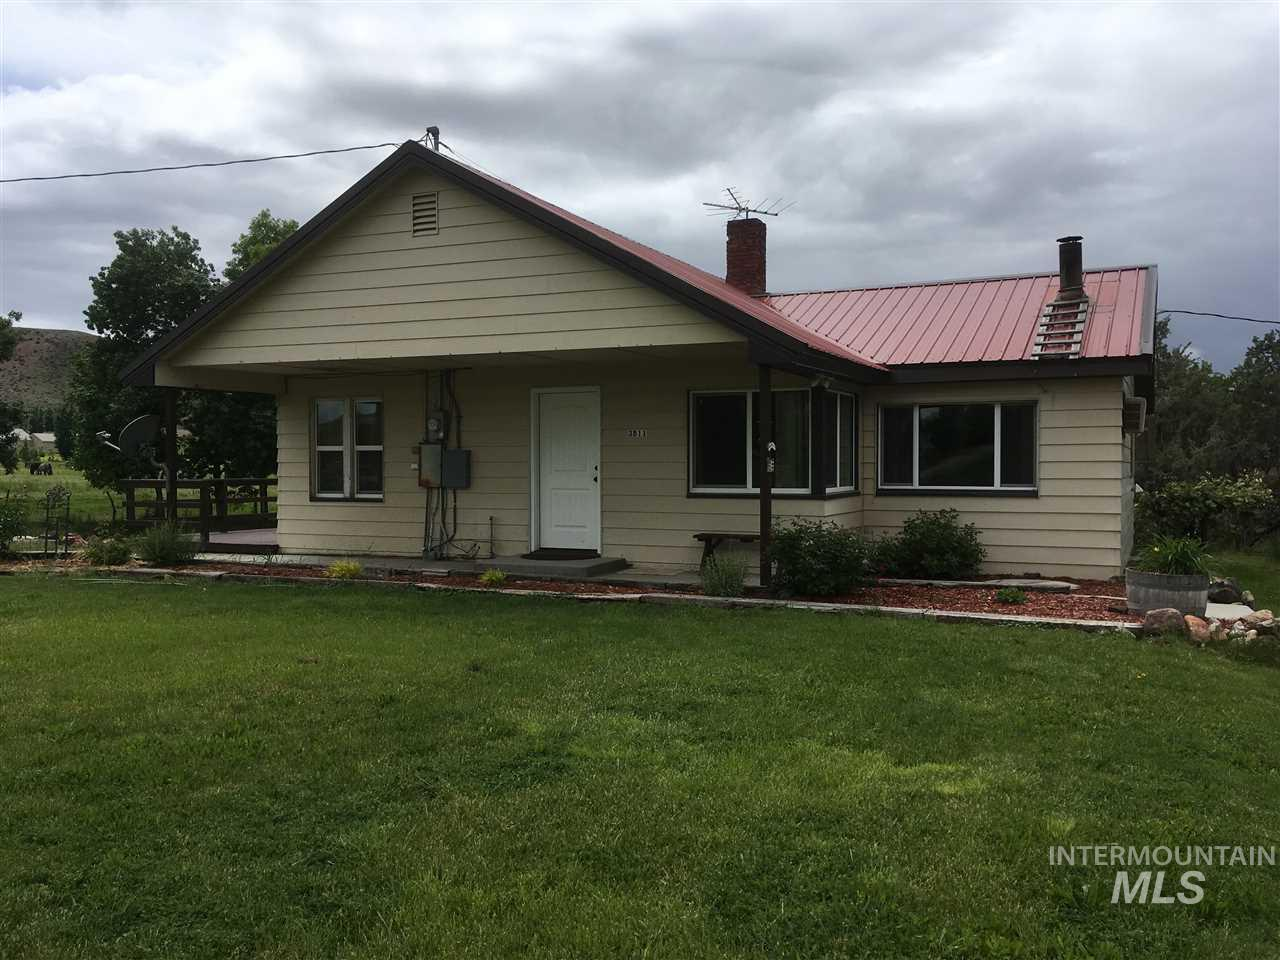 3811 Bowman Rd, Emmett, Idaho 83617, 2 Bedrooms, 1 Bathroom, Residential For Sale, Price $299,000, 98730367